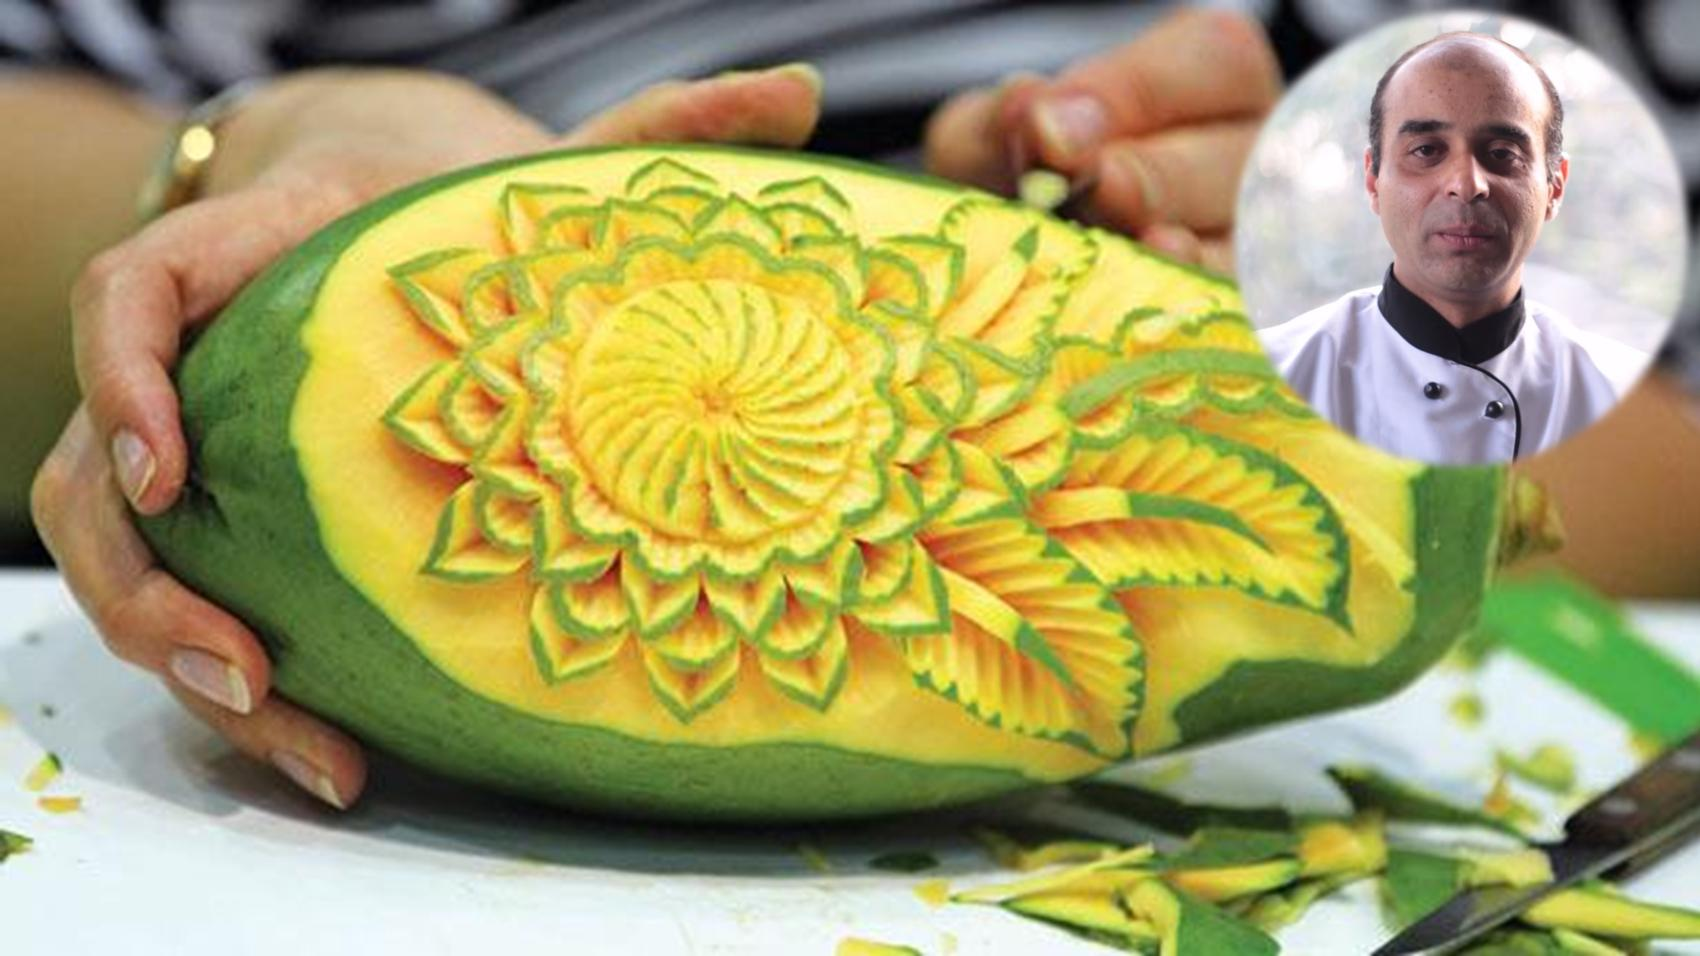 Fruit & Vegetable Carving